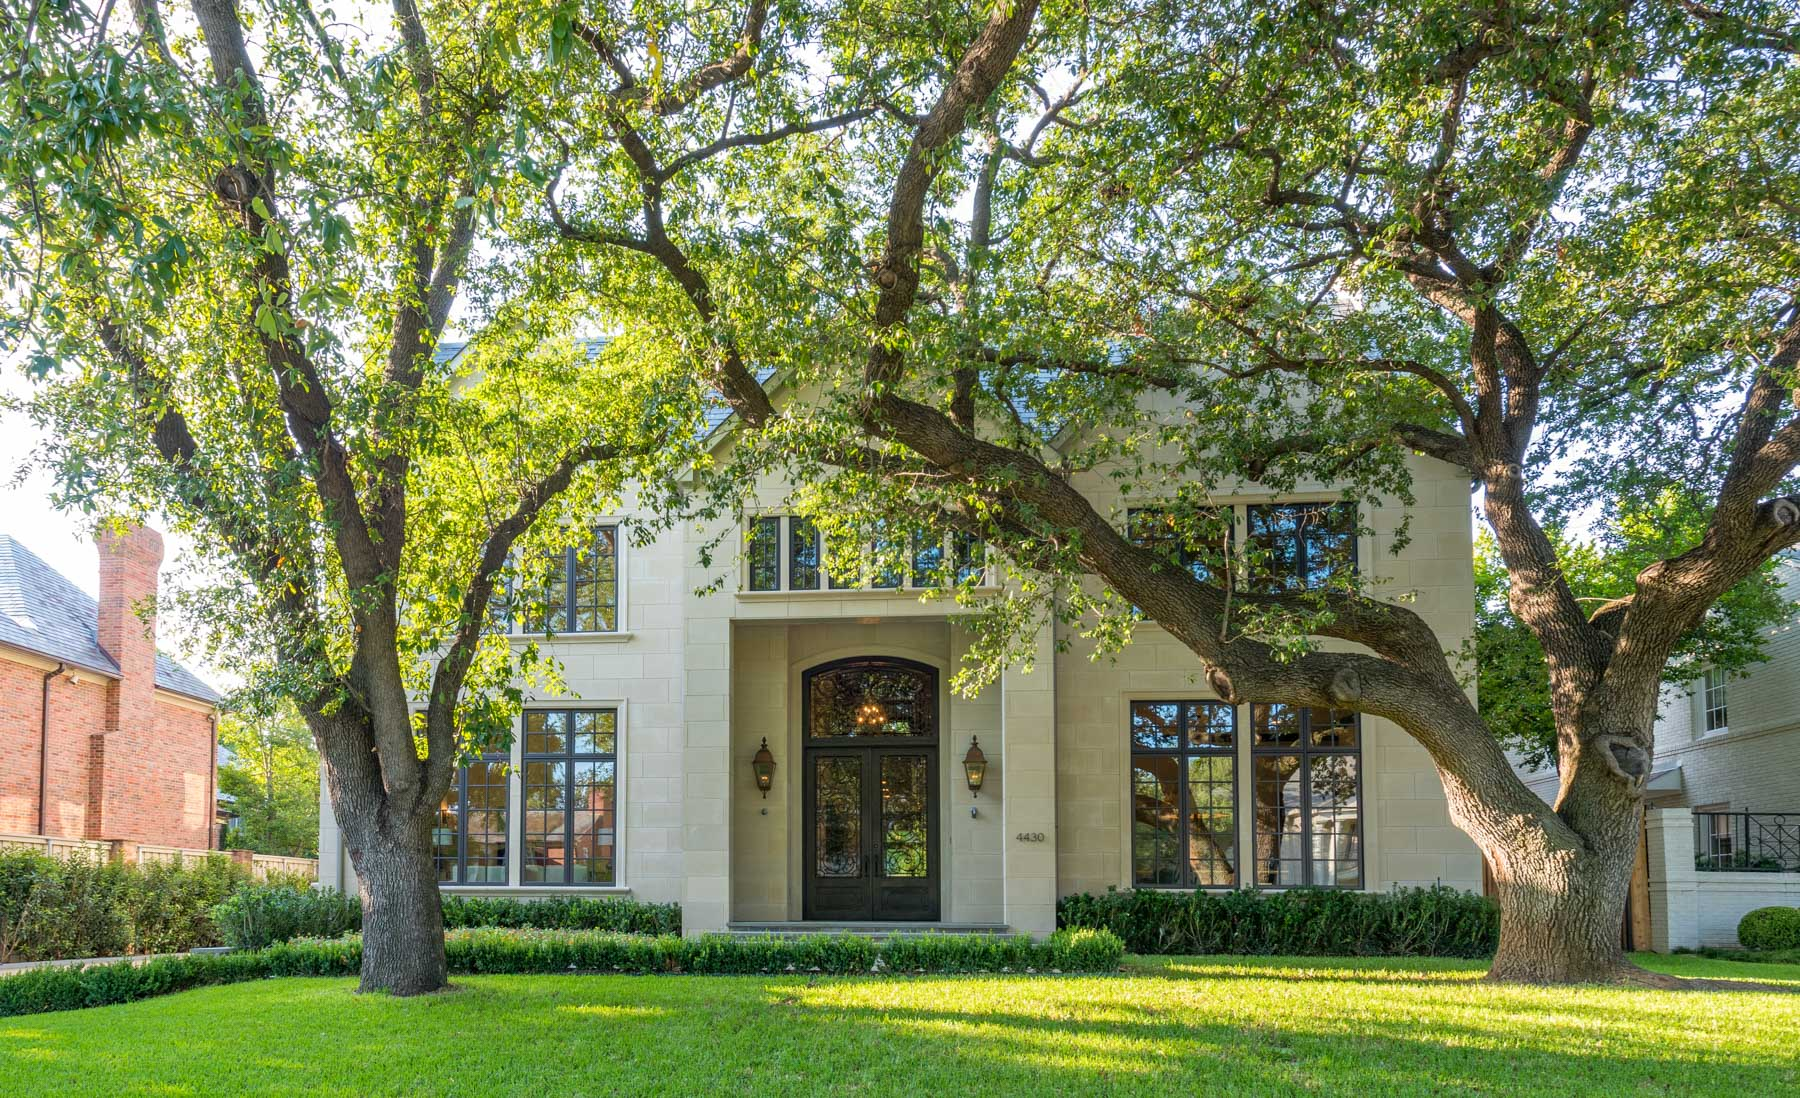 단독 가정 주택 용 매매 에 French Streets Elegant Limestone Traditional 4430 Arcady Ave Dallas, 텍사스, 75205 미국